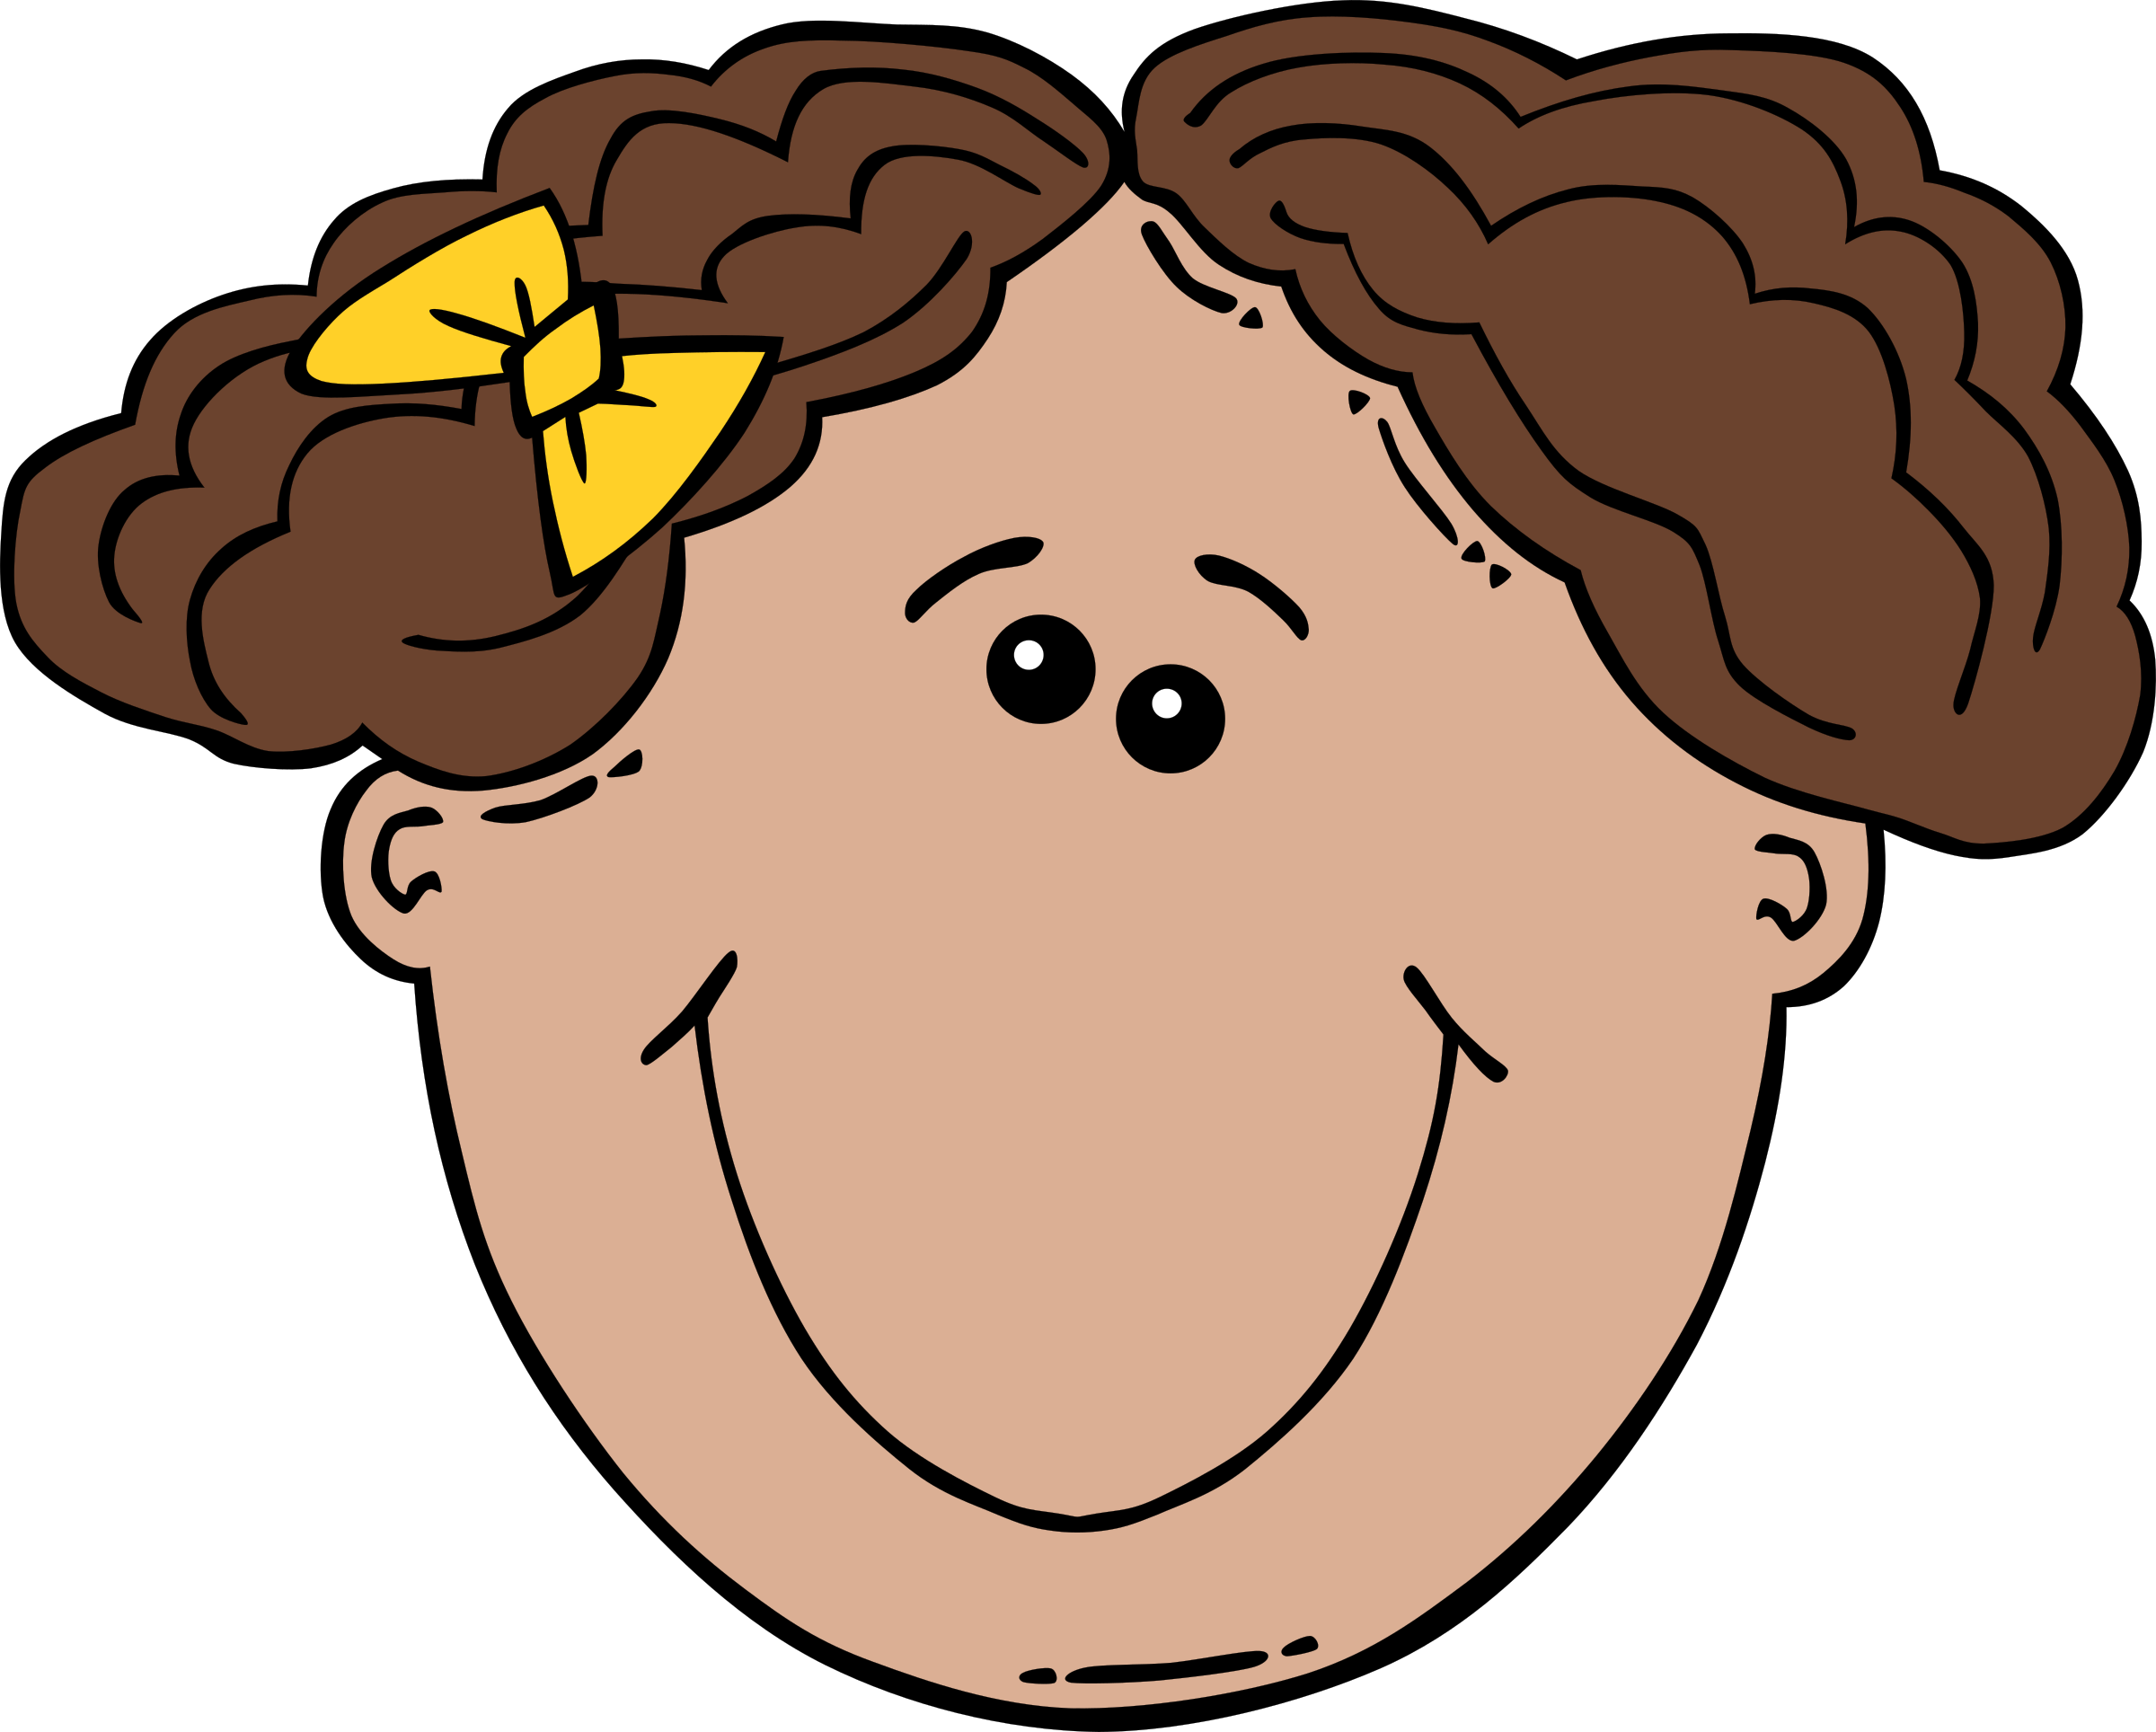 Funny cartoon faces images. Clipart world face